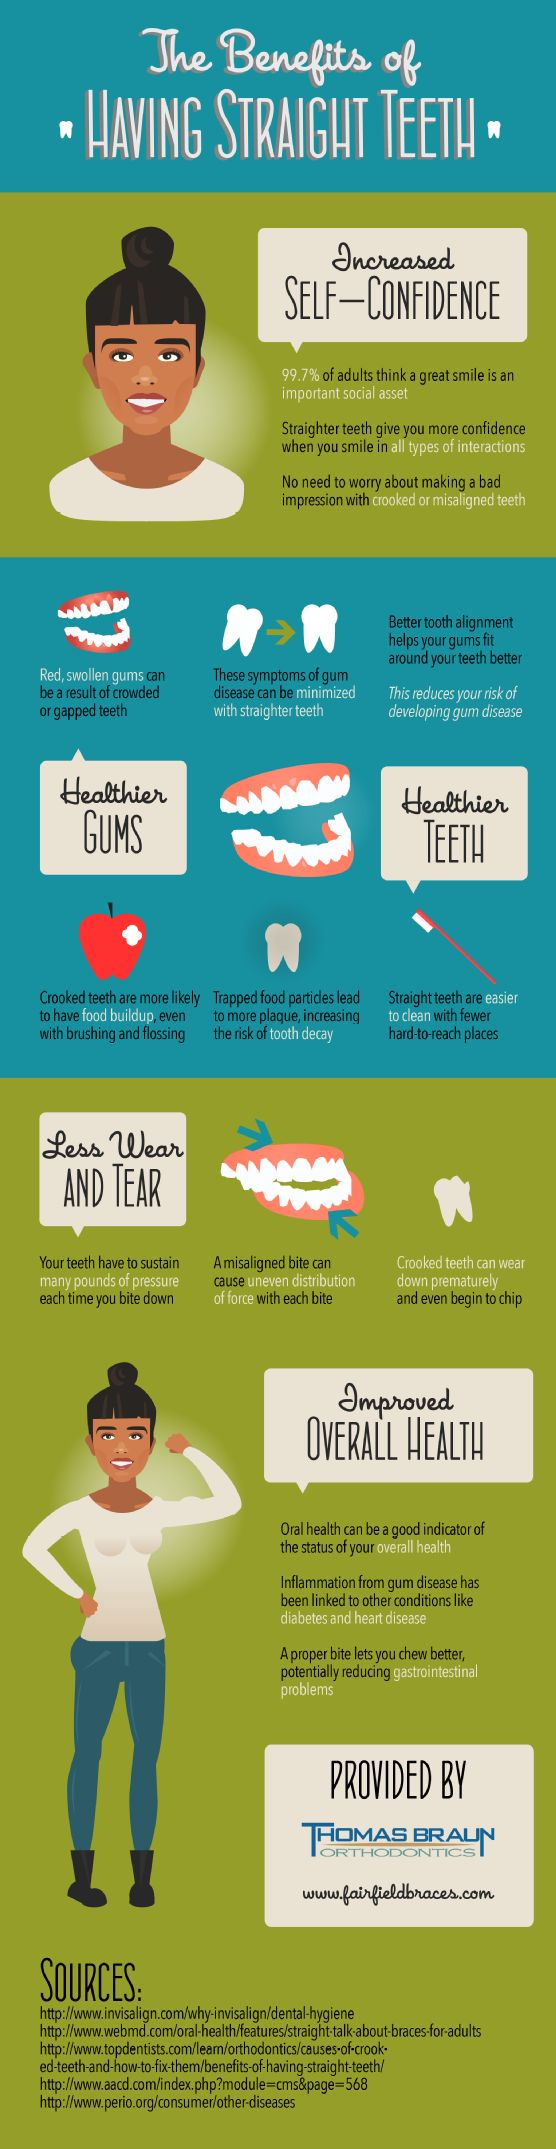 Did You Know That Oral Health Is A Good Indicator Of Overall Health?  Inflammation From